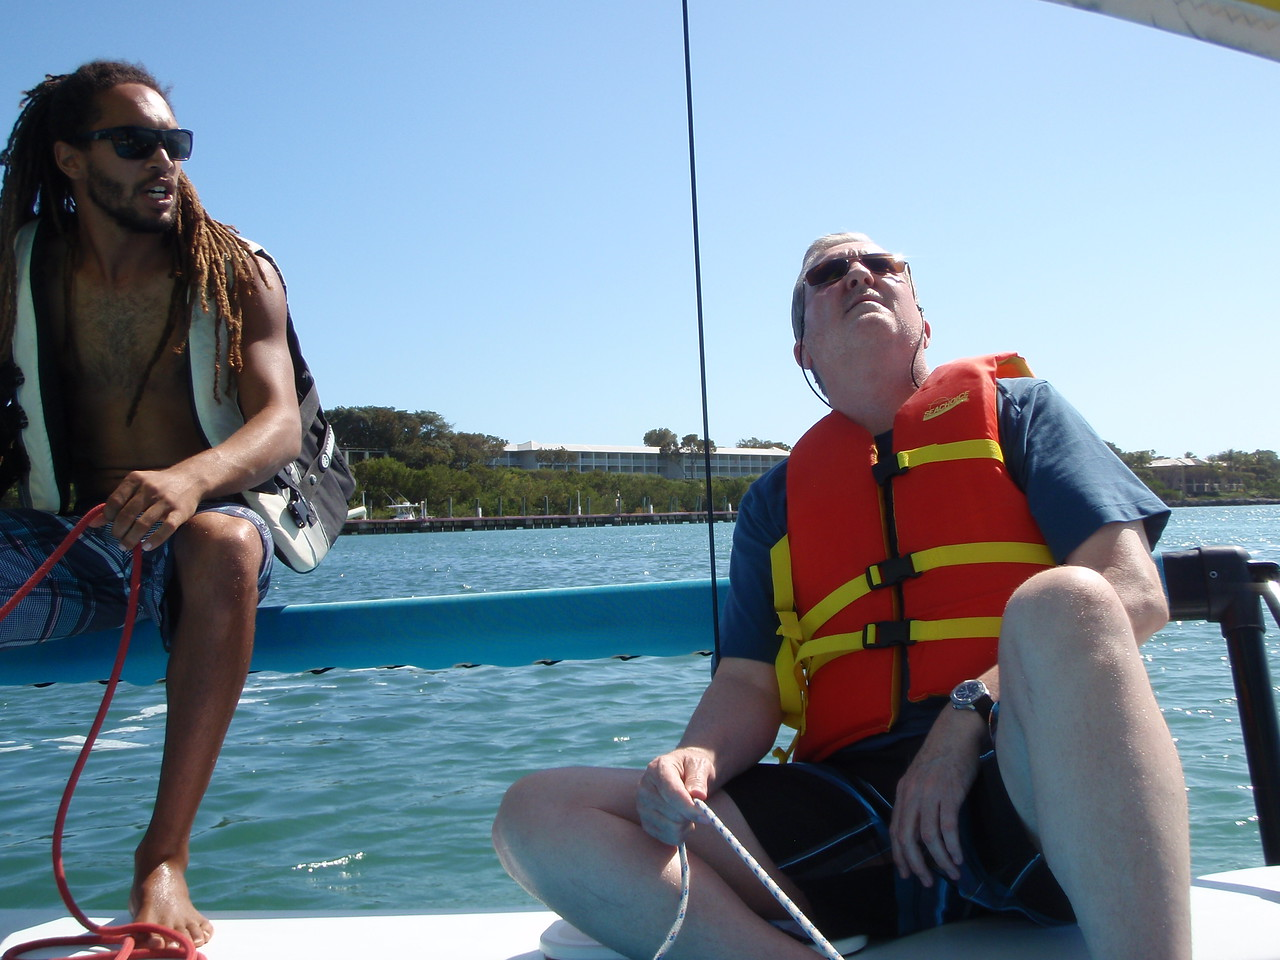 After lunch we headed out on a catamaran where Jordan provided Kenny with tips on sailing